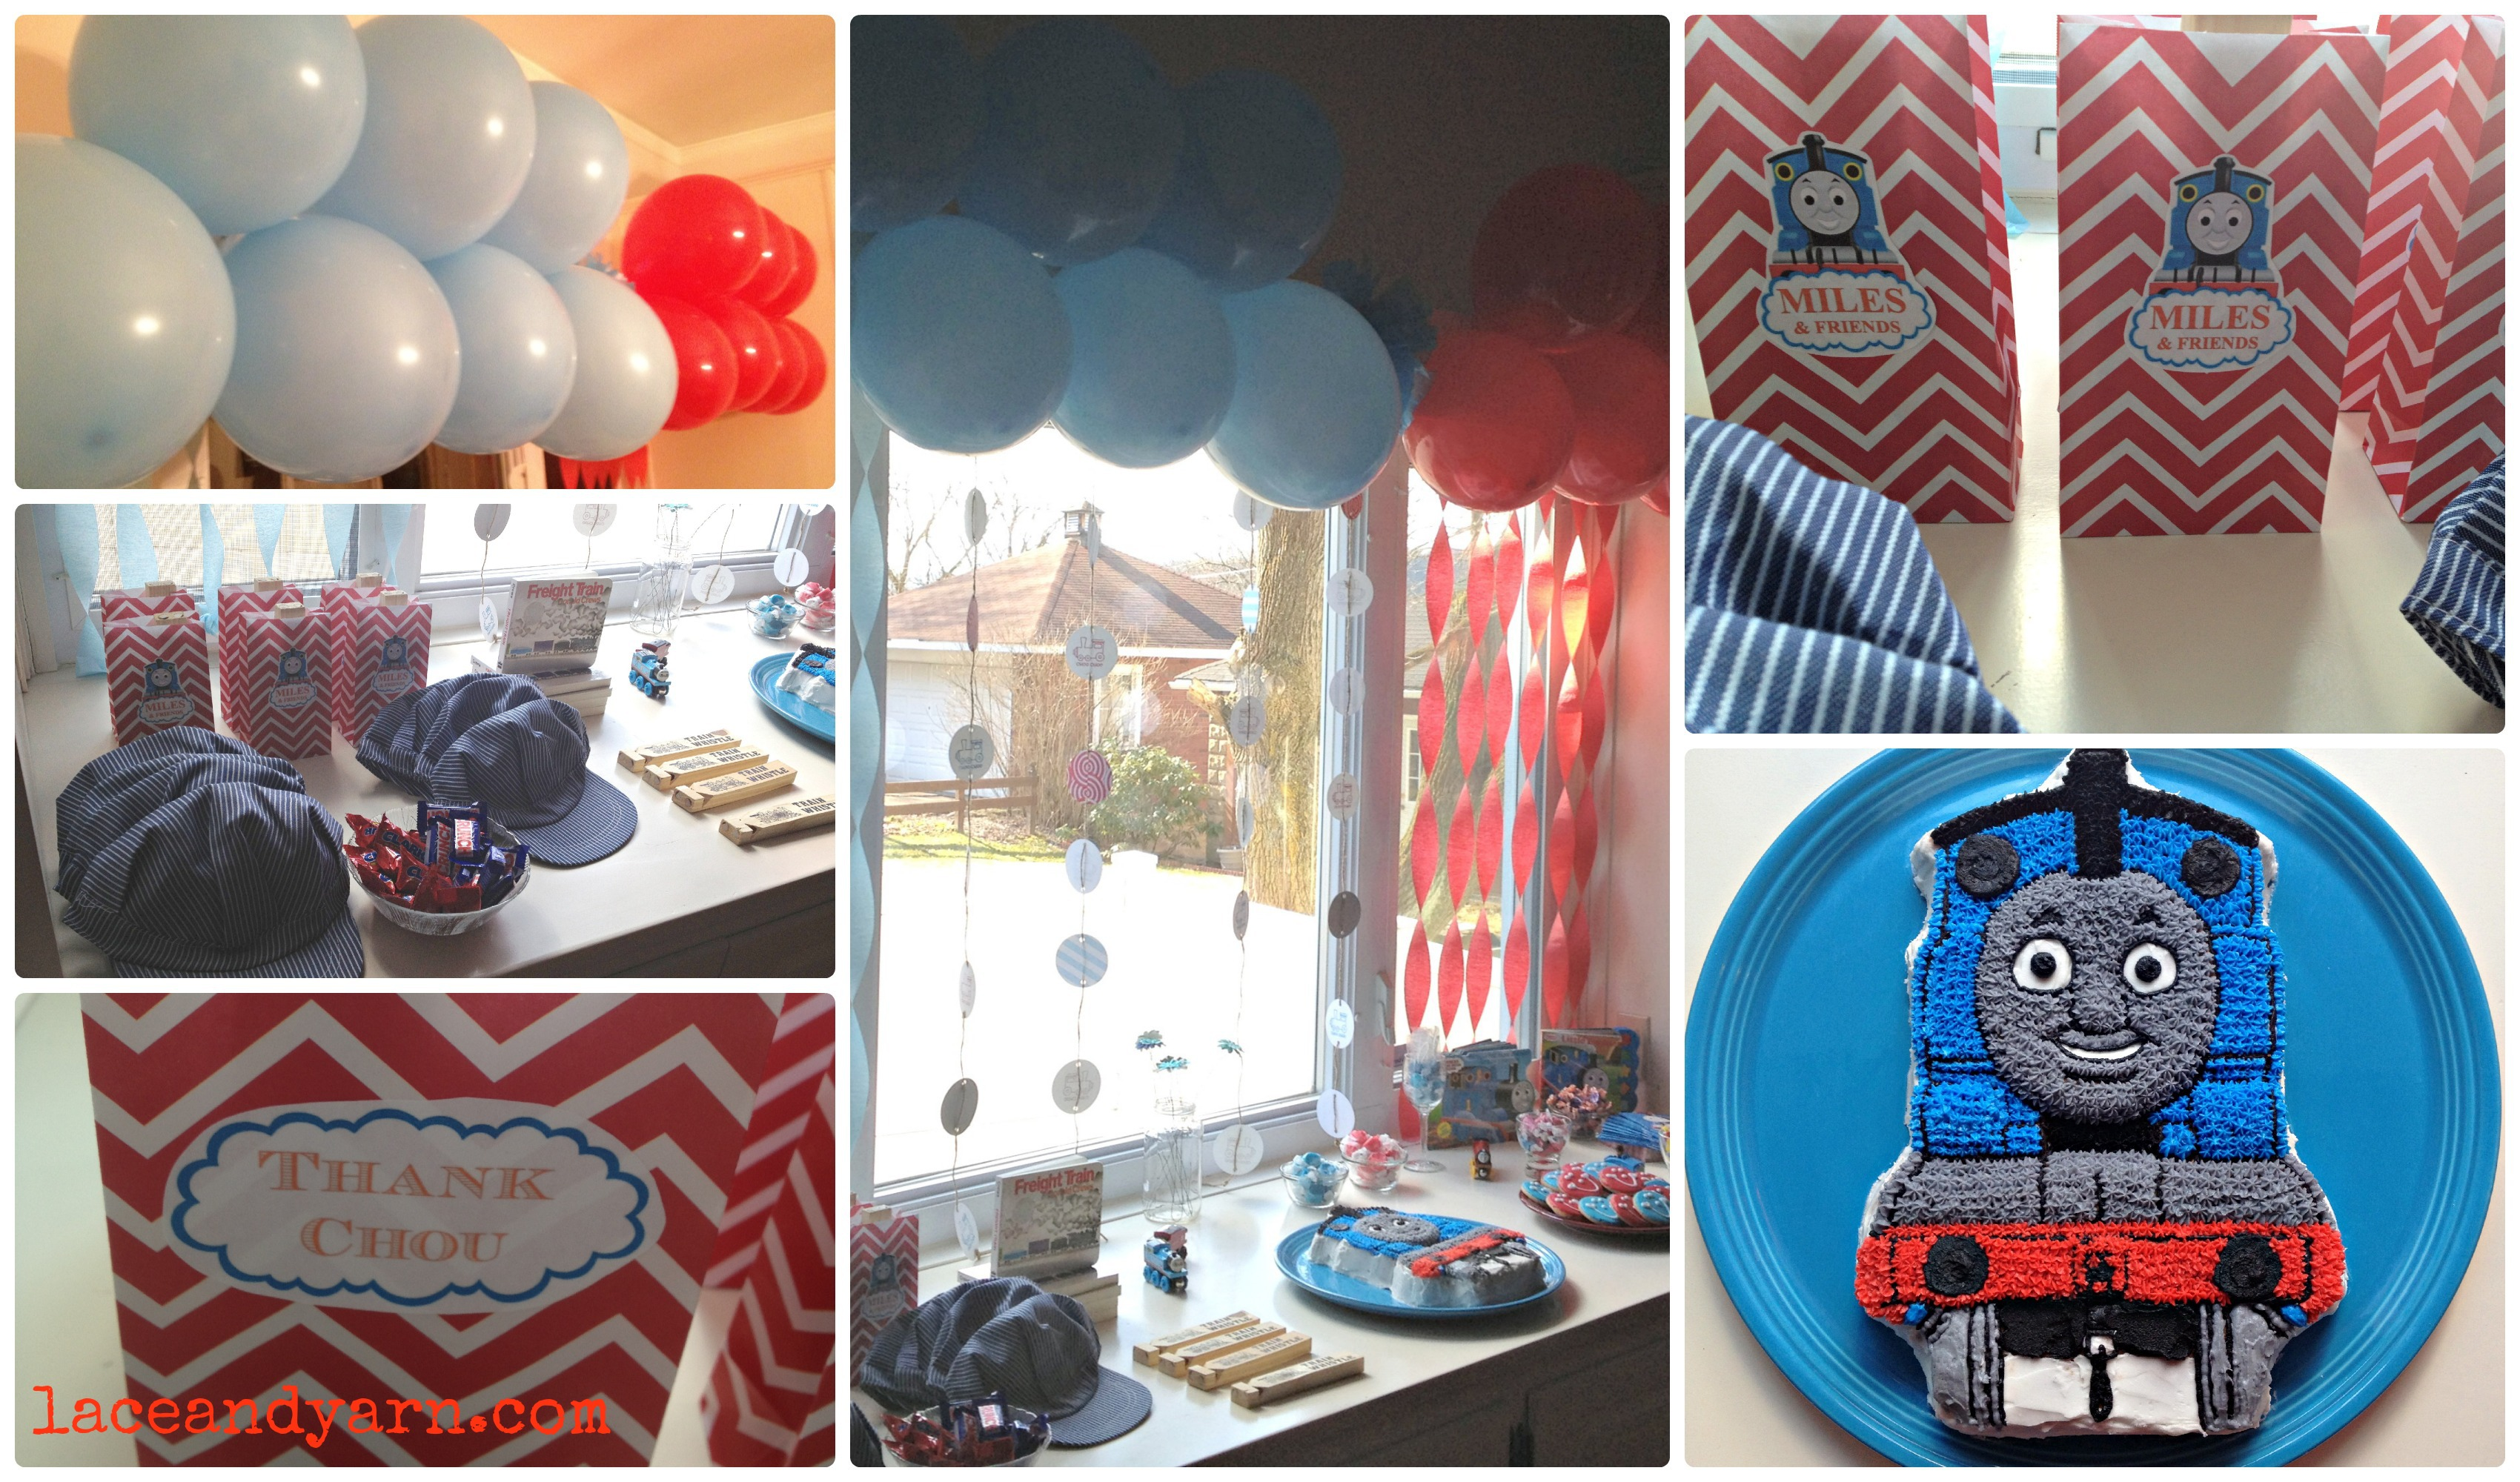 Choo choo thomas the tank engine inspired birthday party lace and thomas the train party solutioingenieria Image collections